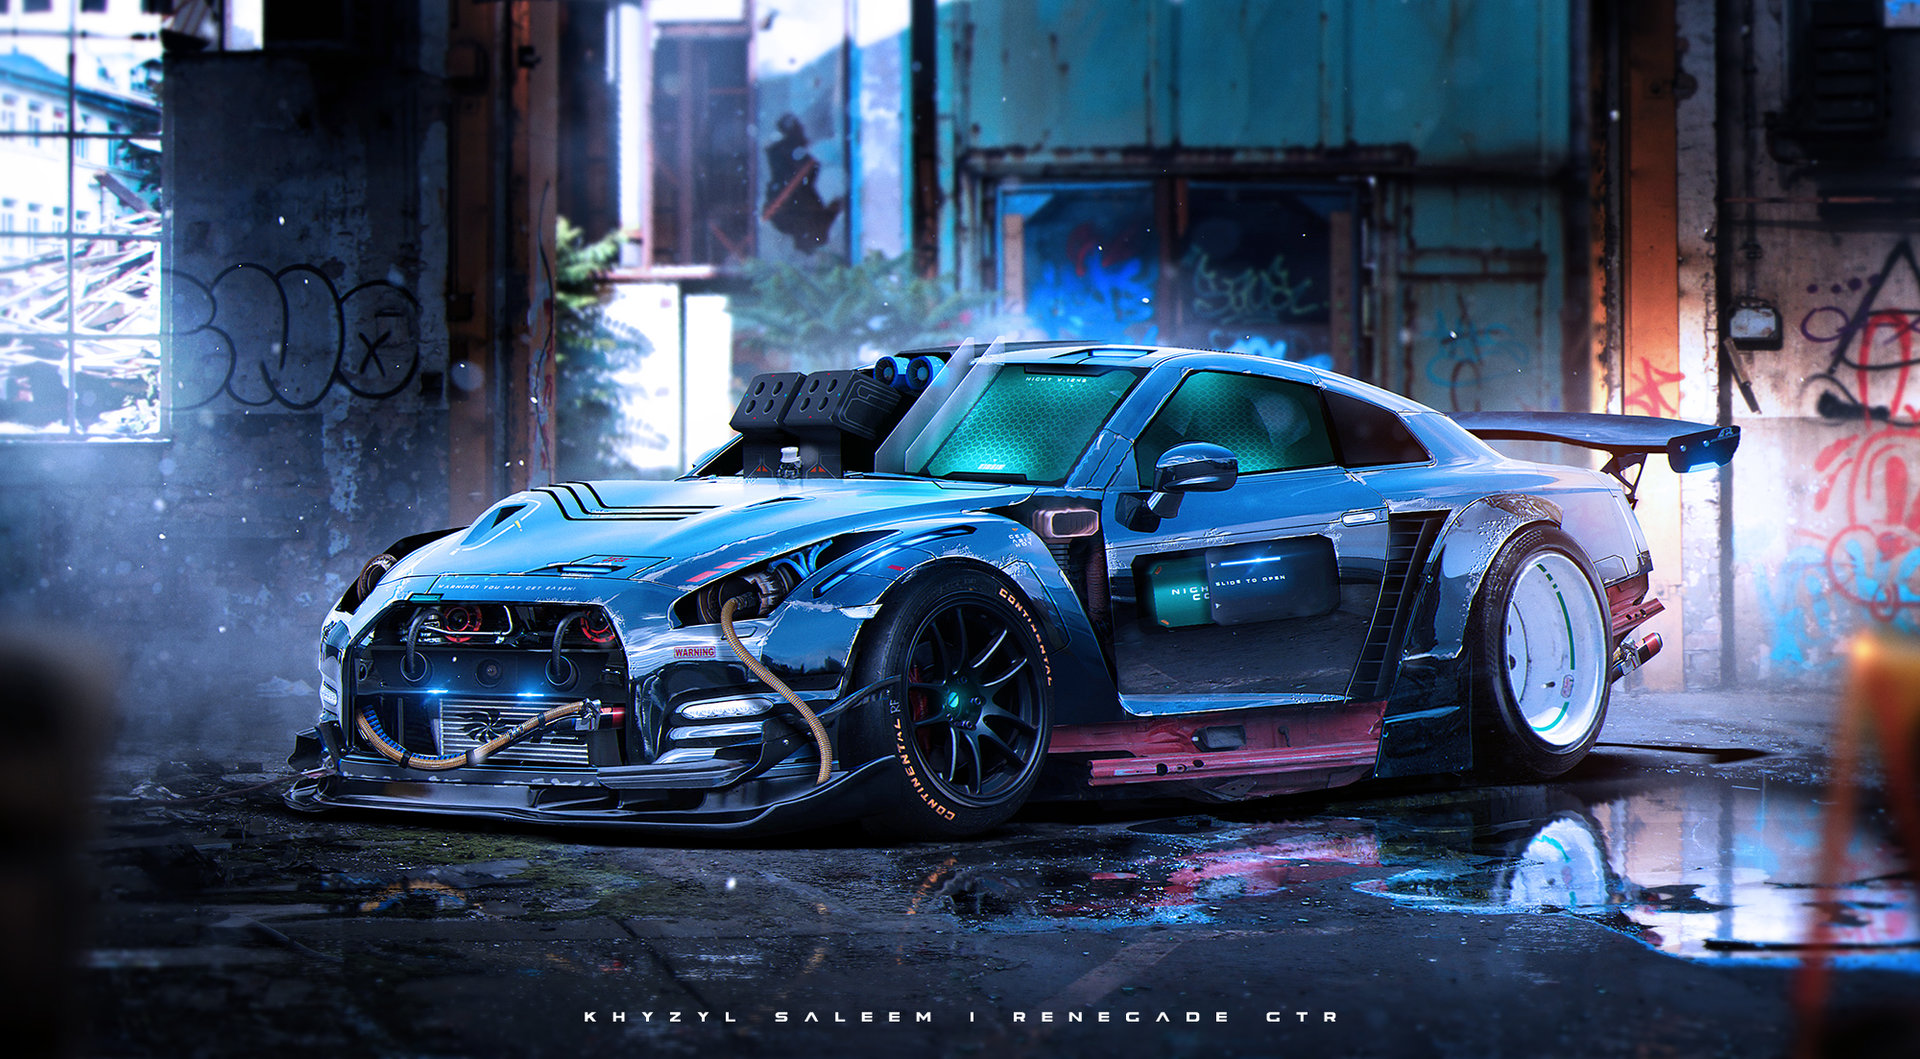 Benz Drift Car >> Khyzyl Saleem - Zen Garage